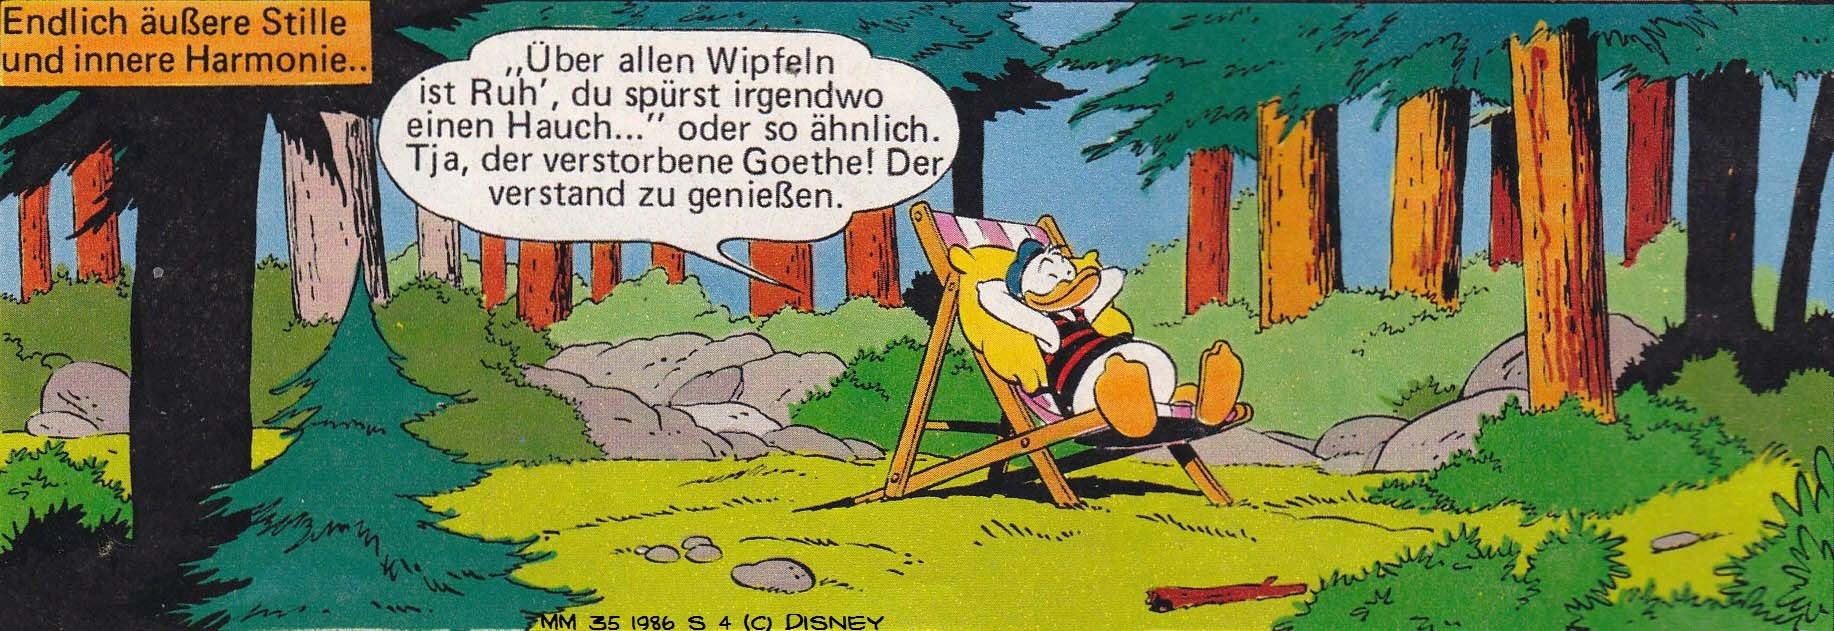 Carl Barks, Dr. Erika Fuchs, Donald Duck in Ruhelos, Micky Maus 35, 1986